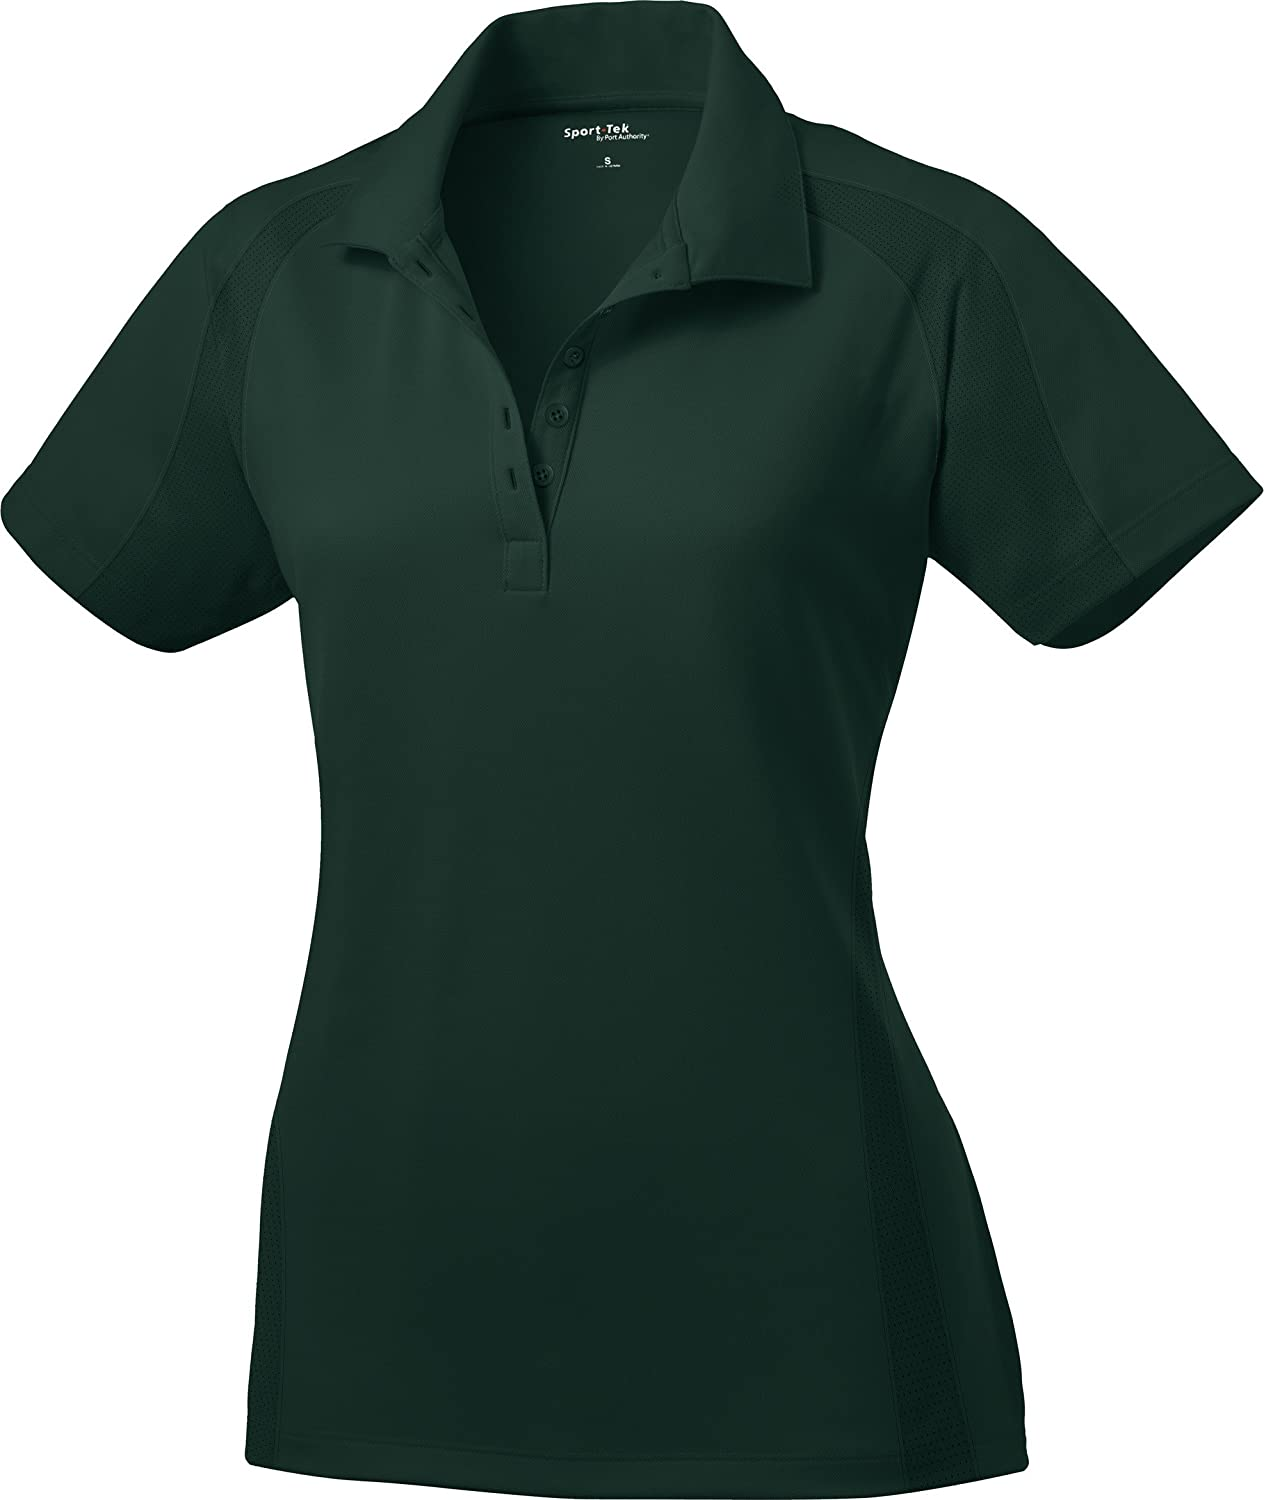 Sport-Tek Ladies Dri-Mesh Pro Performance Polo Shirt L474 XL Dark Green